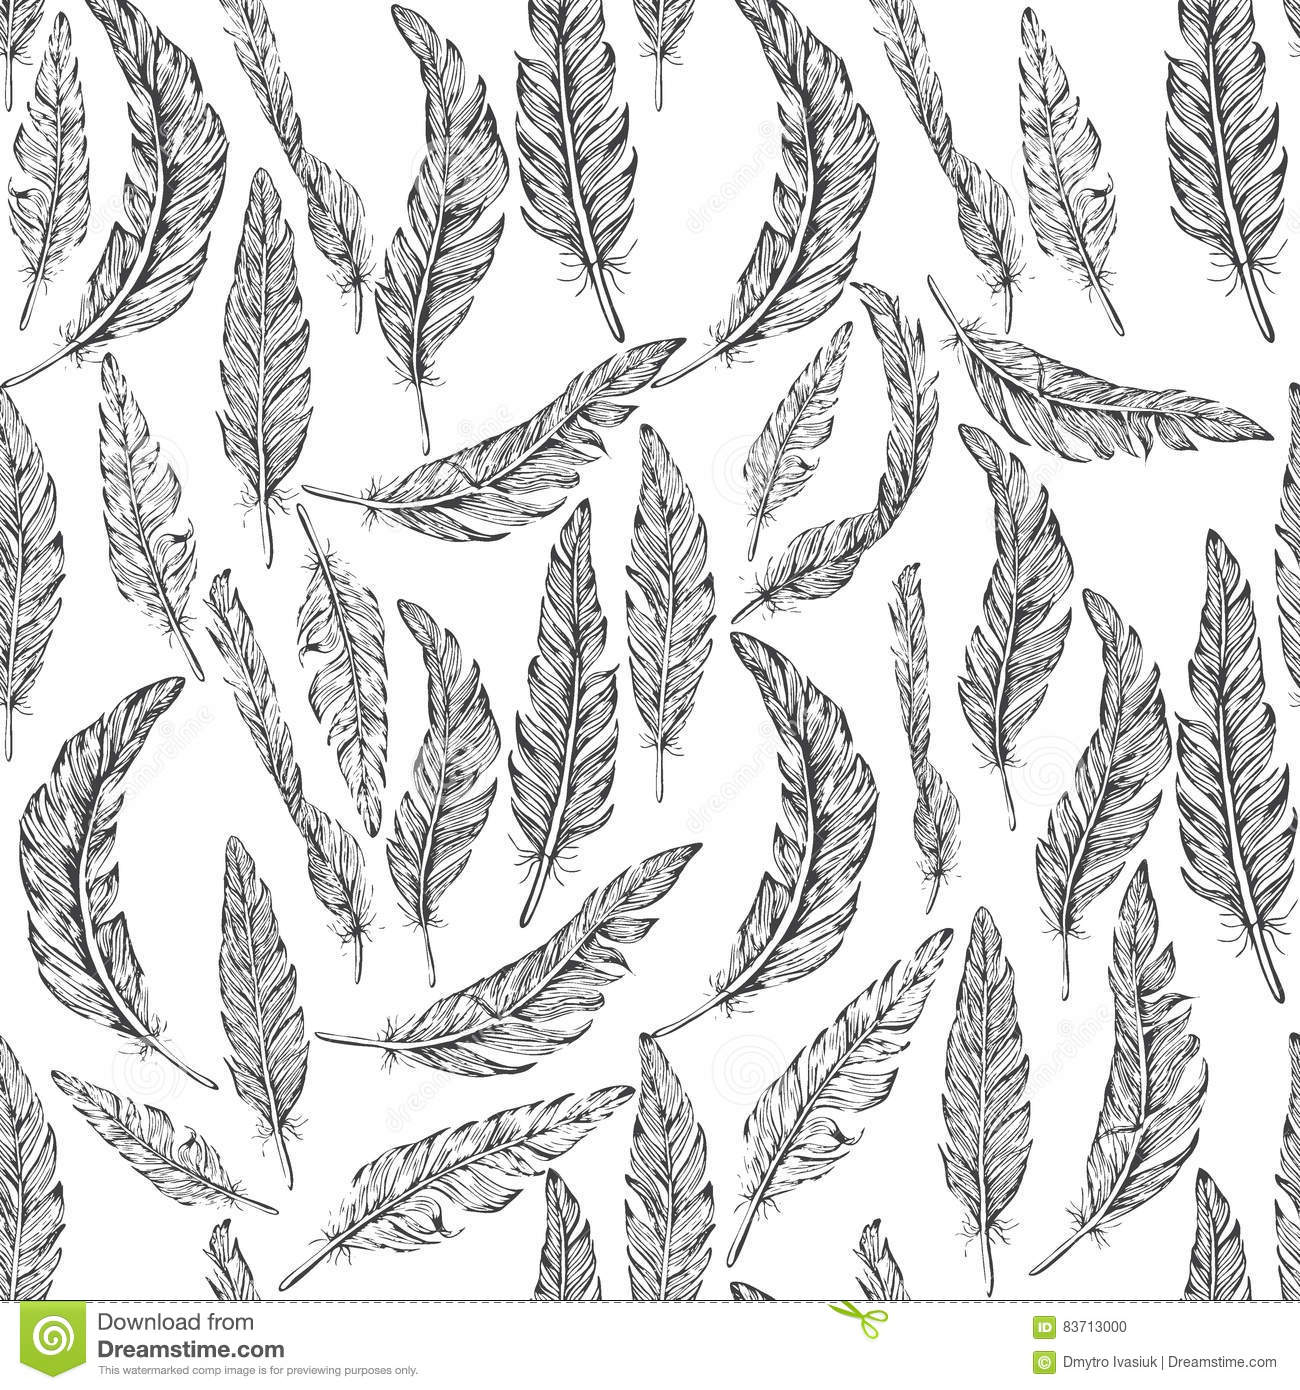 Feathers Seamless Pattern, Stock Vector